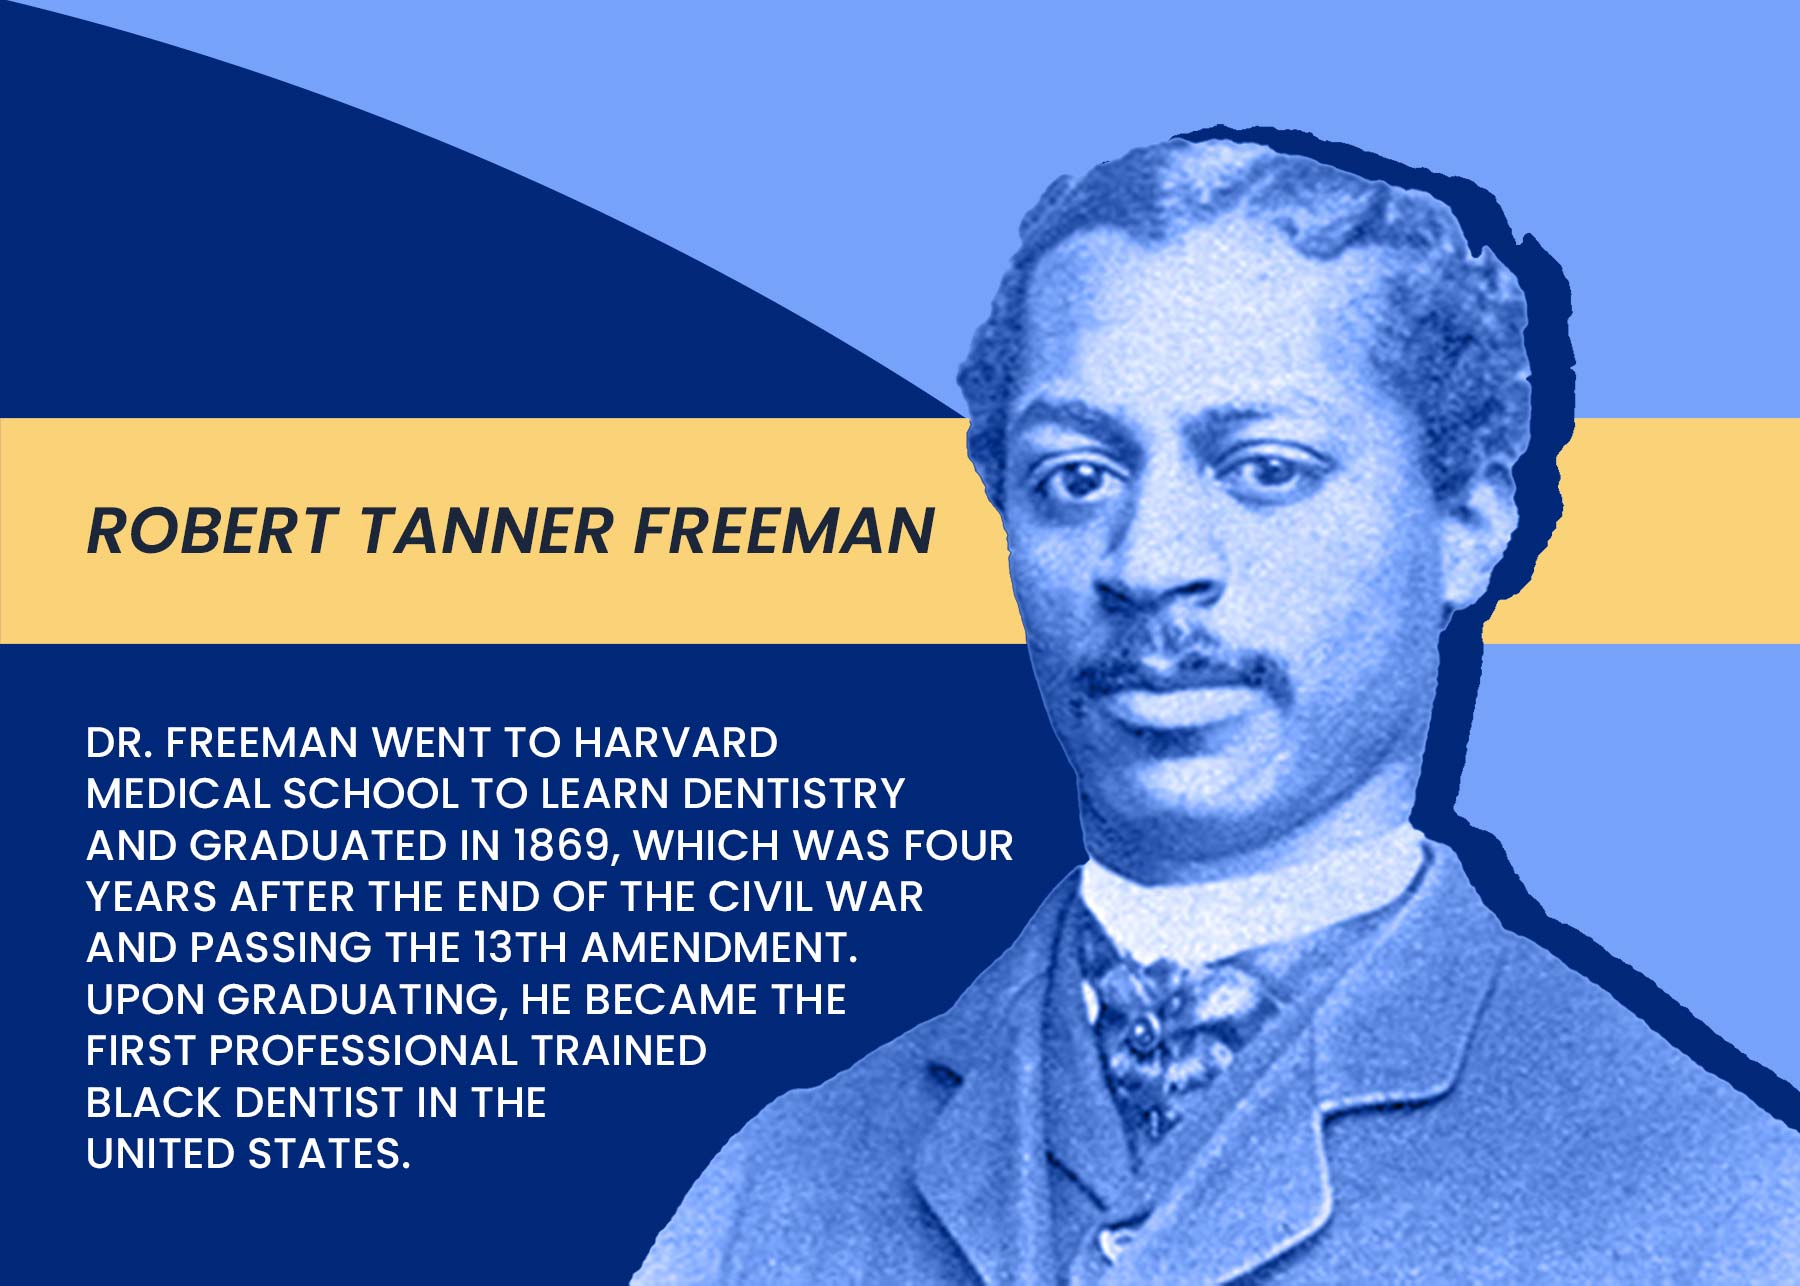 Social Media History of Black Dentists Robert Tanner Freeman